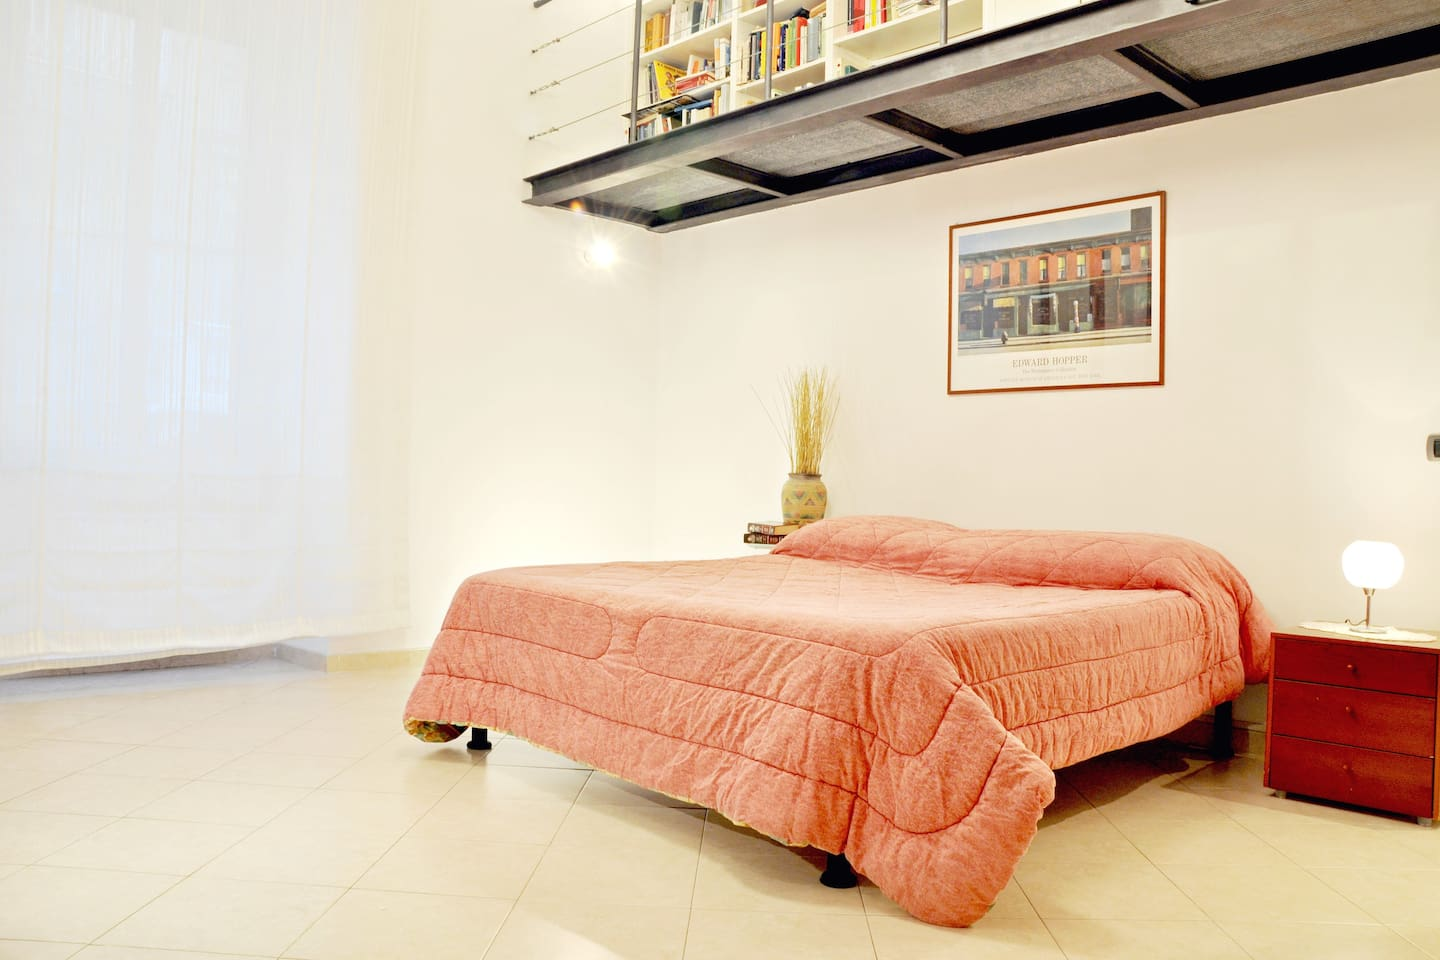 The main bedroom, equipped with  a 210 cm. King size bed.